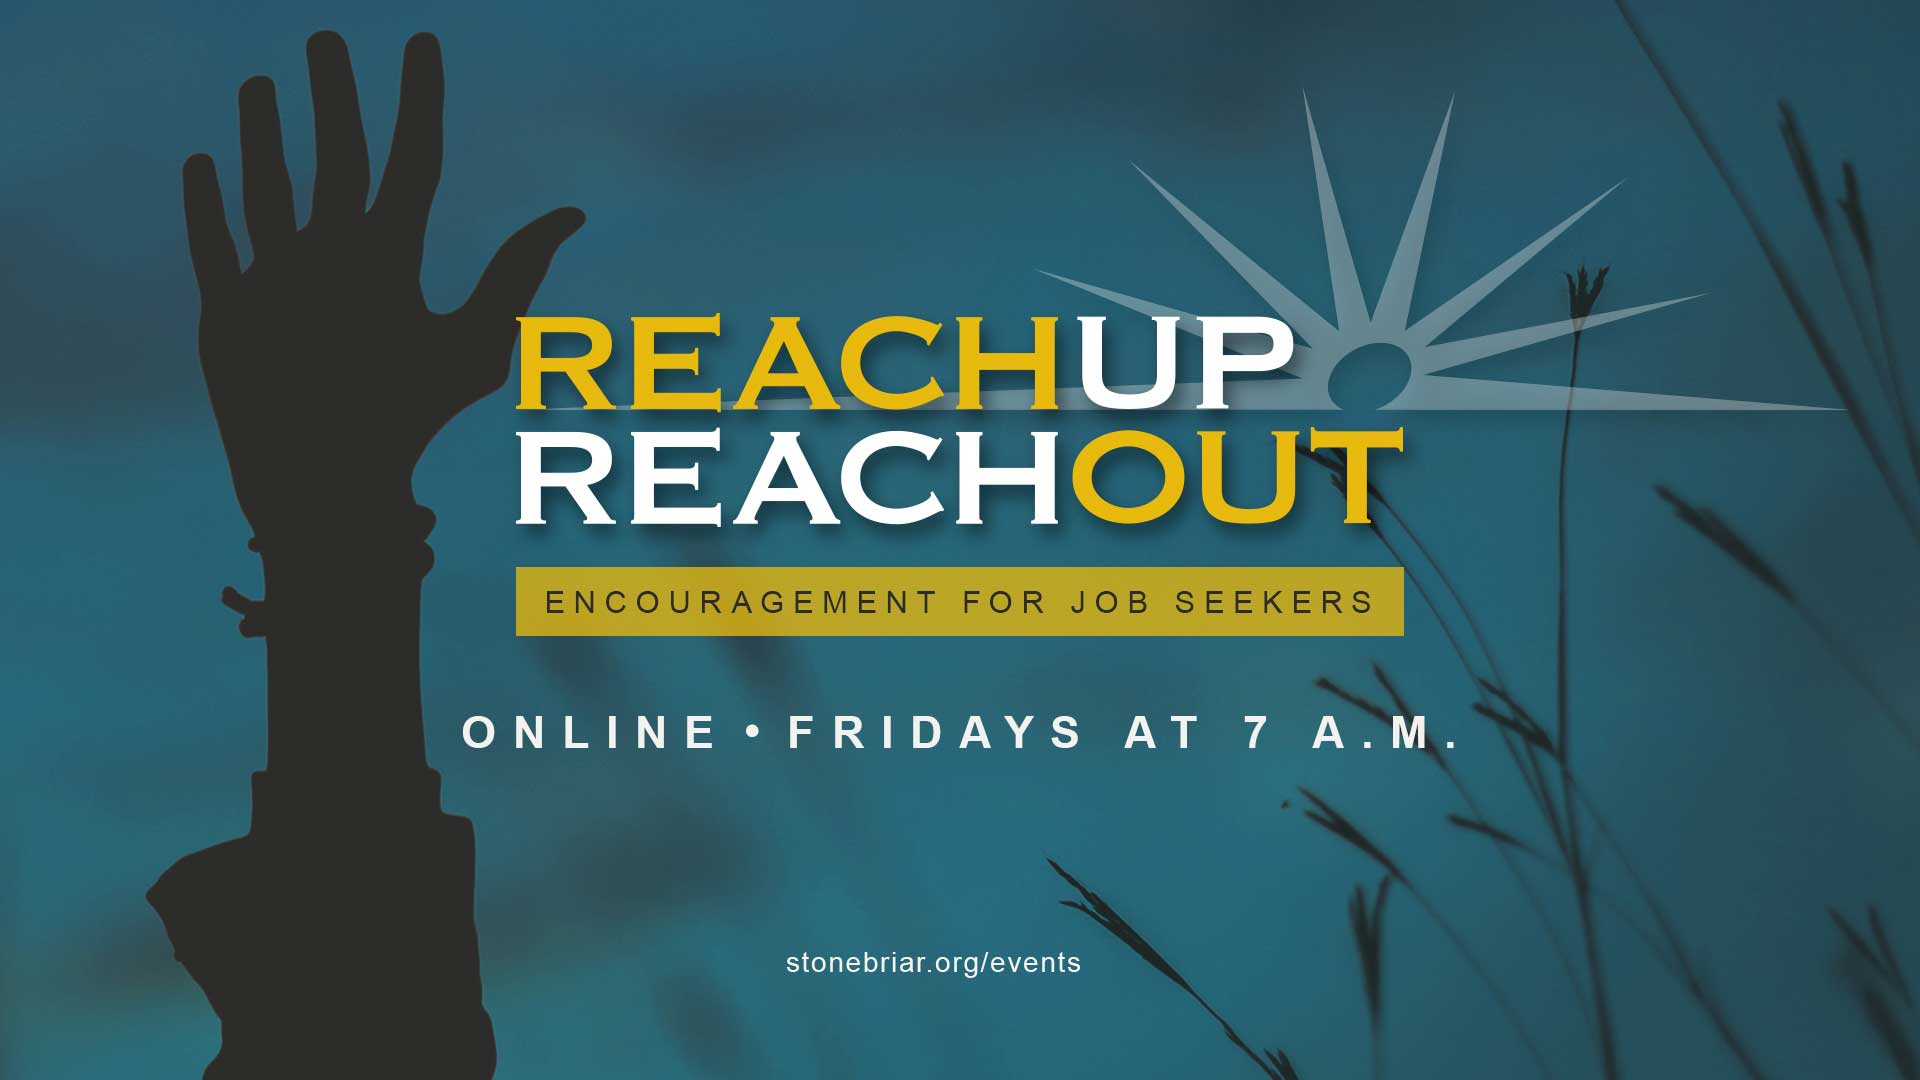 Reach Up Reach Out: Encouragement for Job Seekers